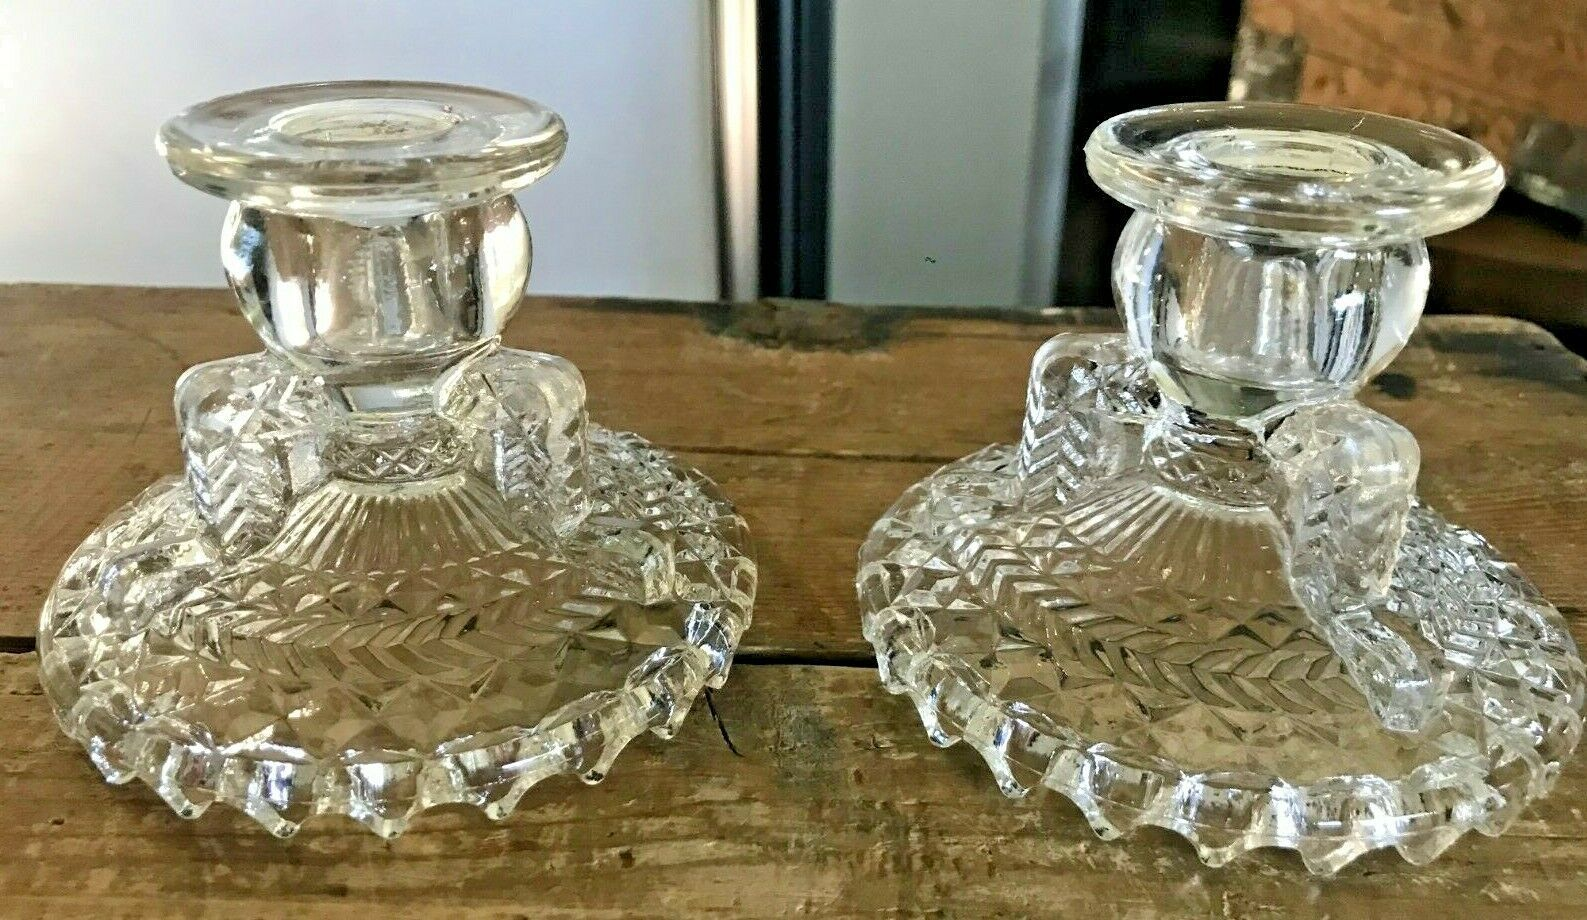 Vtg 50s Anchor Hocking Glass Clear Herringbone Candlesticks Candle Holders Pair - $19.34